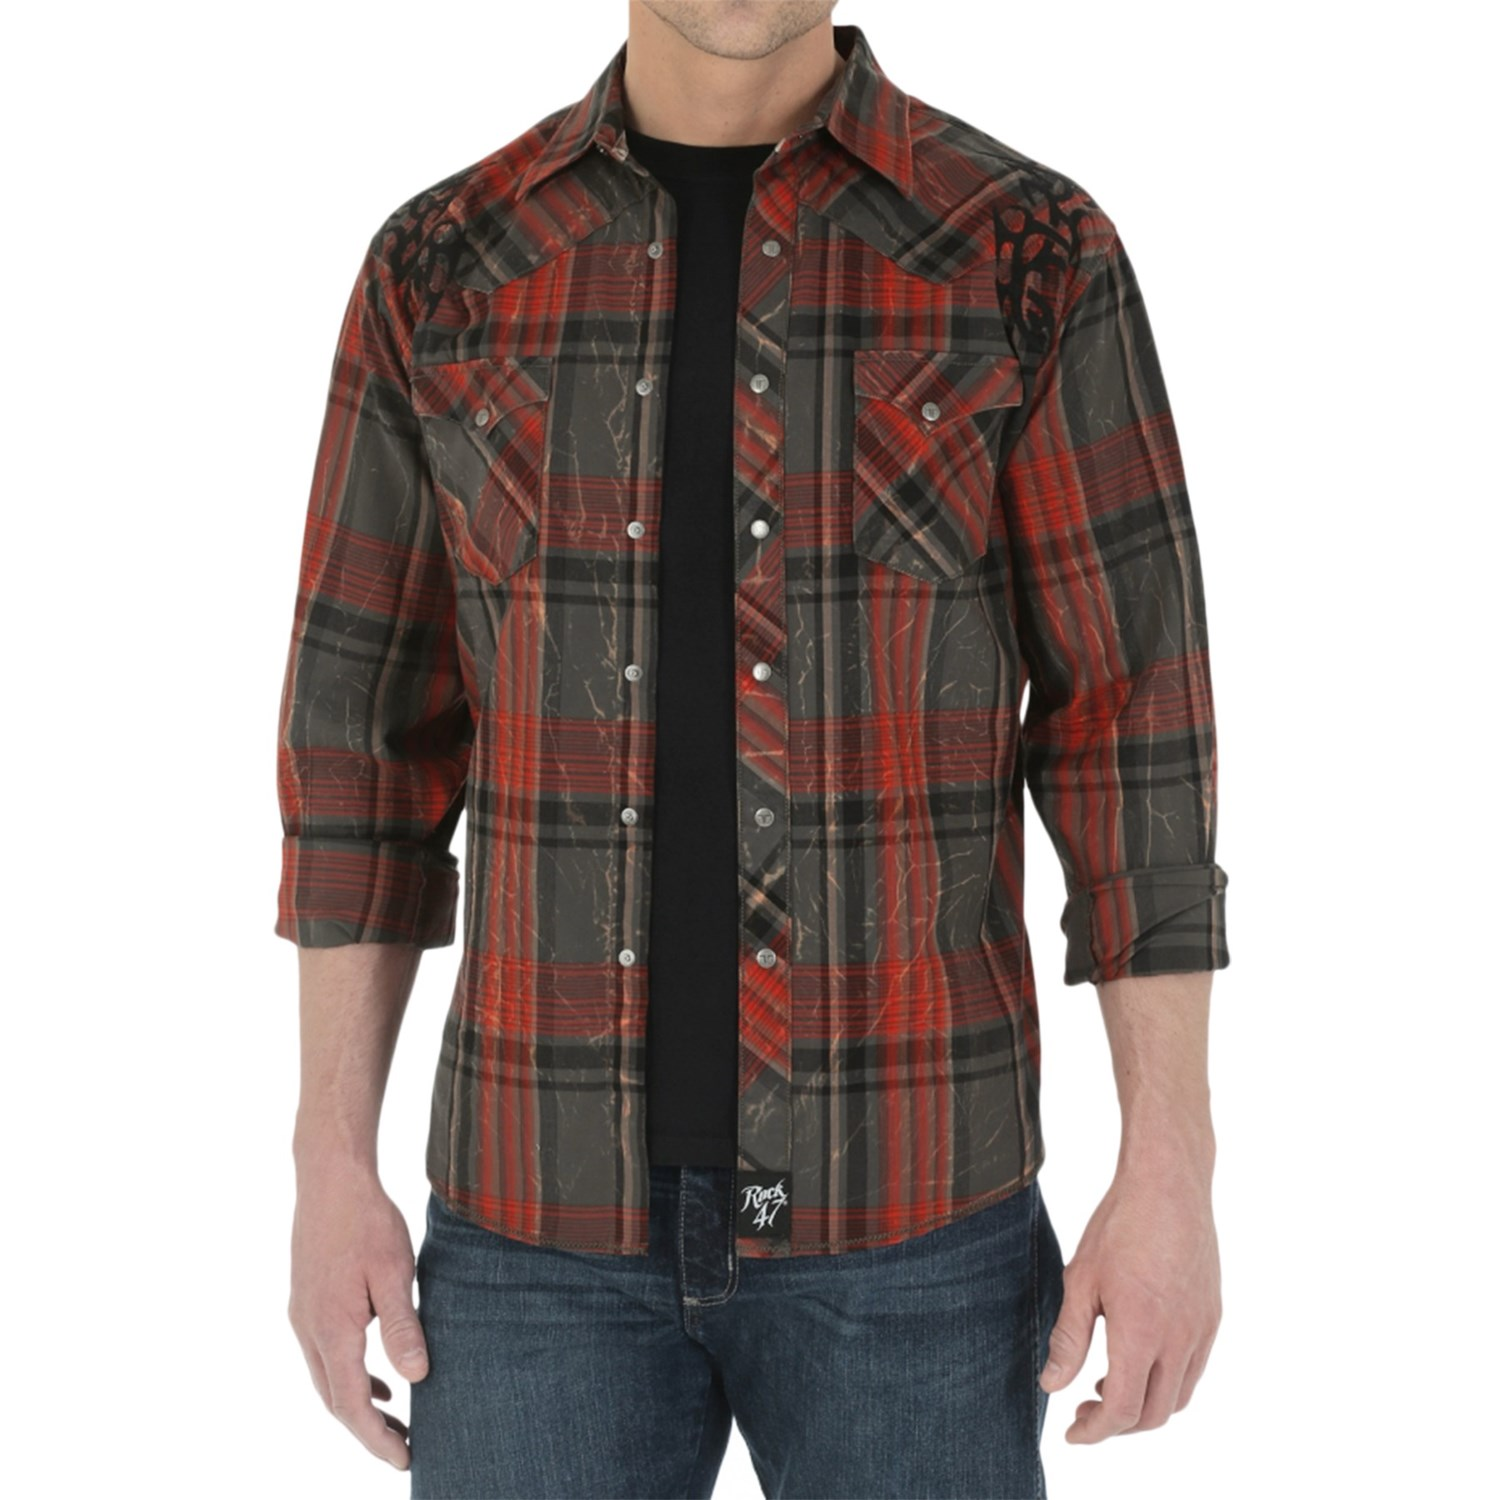 High quality men's, women's and kids western wear and accessories from the inventor of the snap button western shirt. Made in the USA. Authentic Western Shirts, Jackets, Ties, Belts, Hats and Accessories – Rockmount.